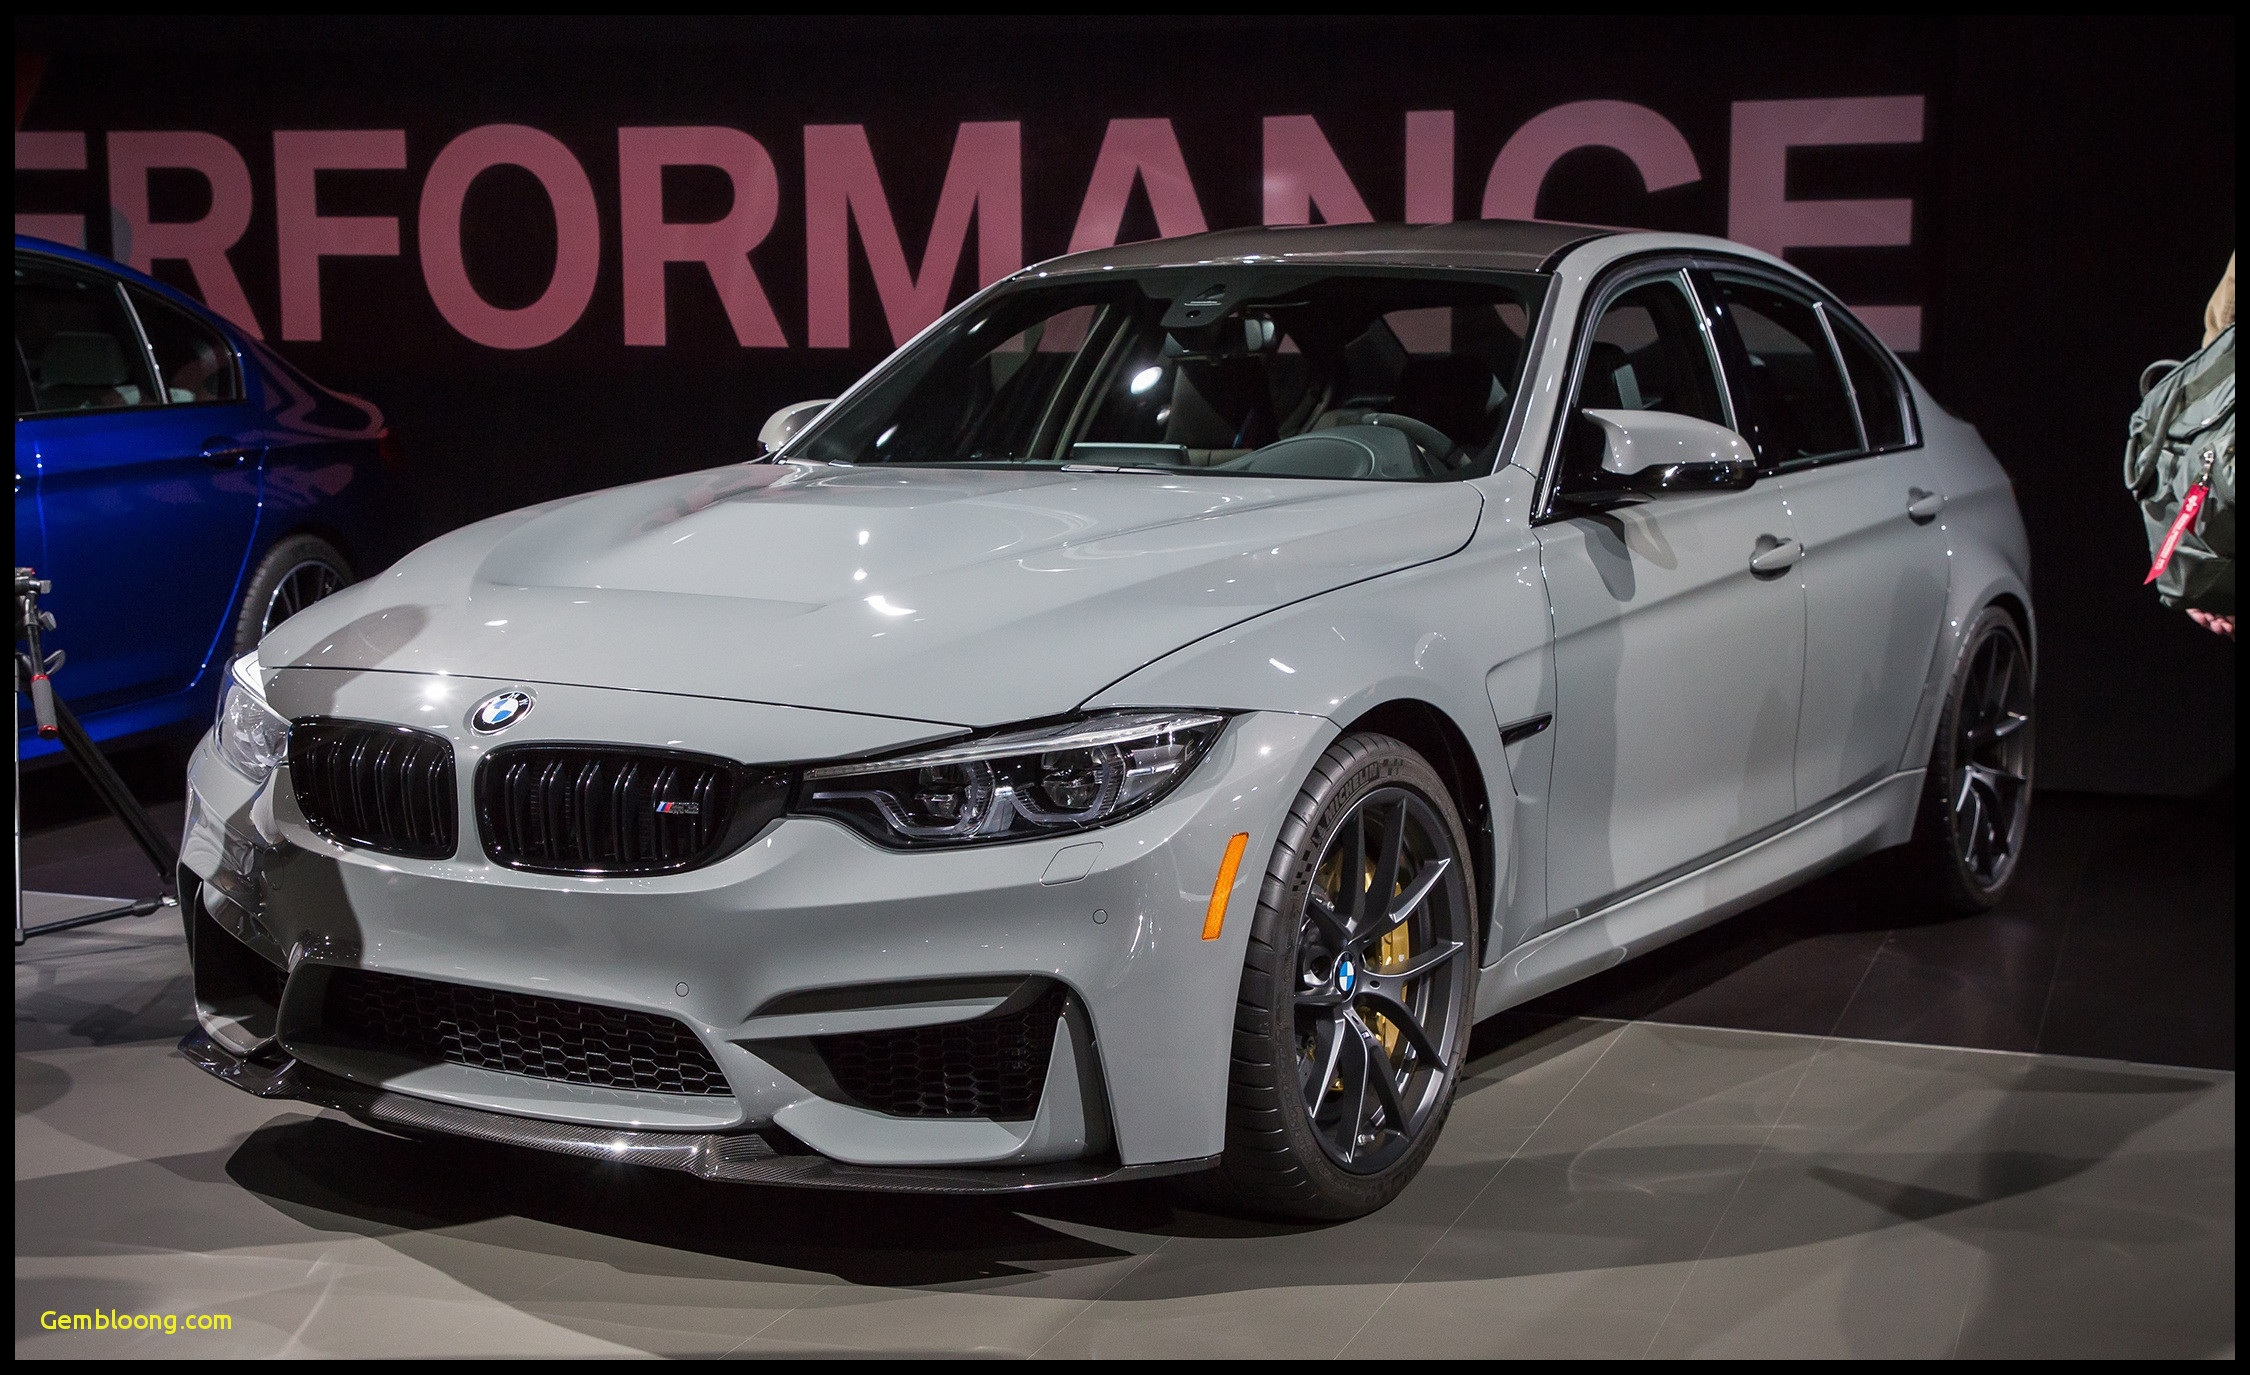 2018 Bmw 5 Series Redesign New Review Bmw 5 2018 Review 2018 Bmw M3 M3 2019